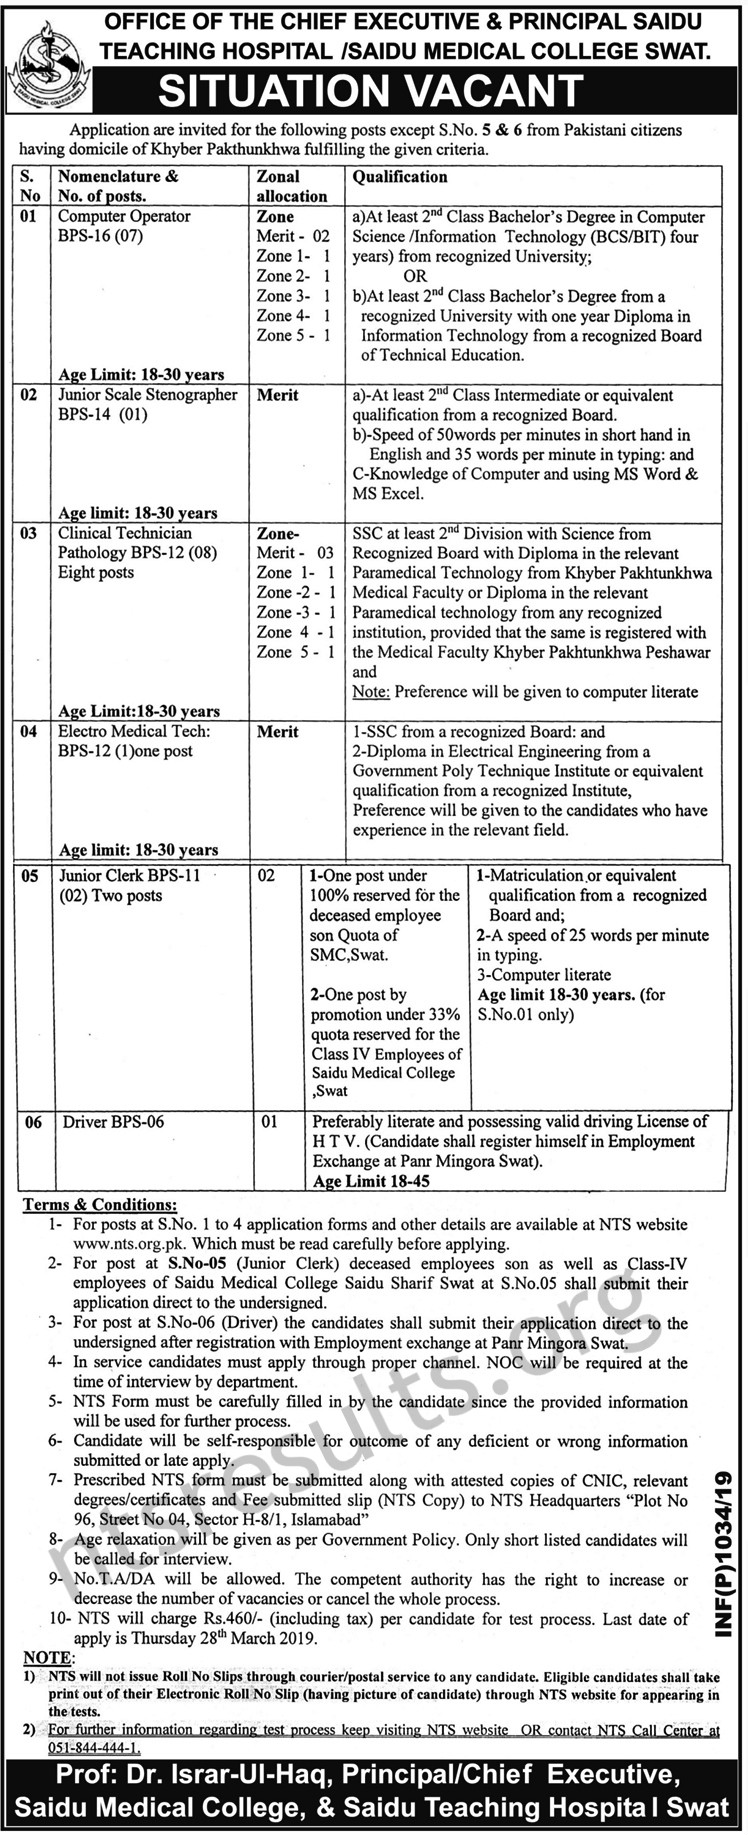 Saidu Teaching Medical College SMC Saidu Sharif Swat Jobs Via NTS